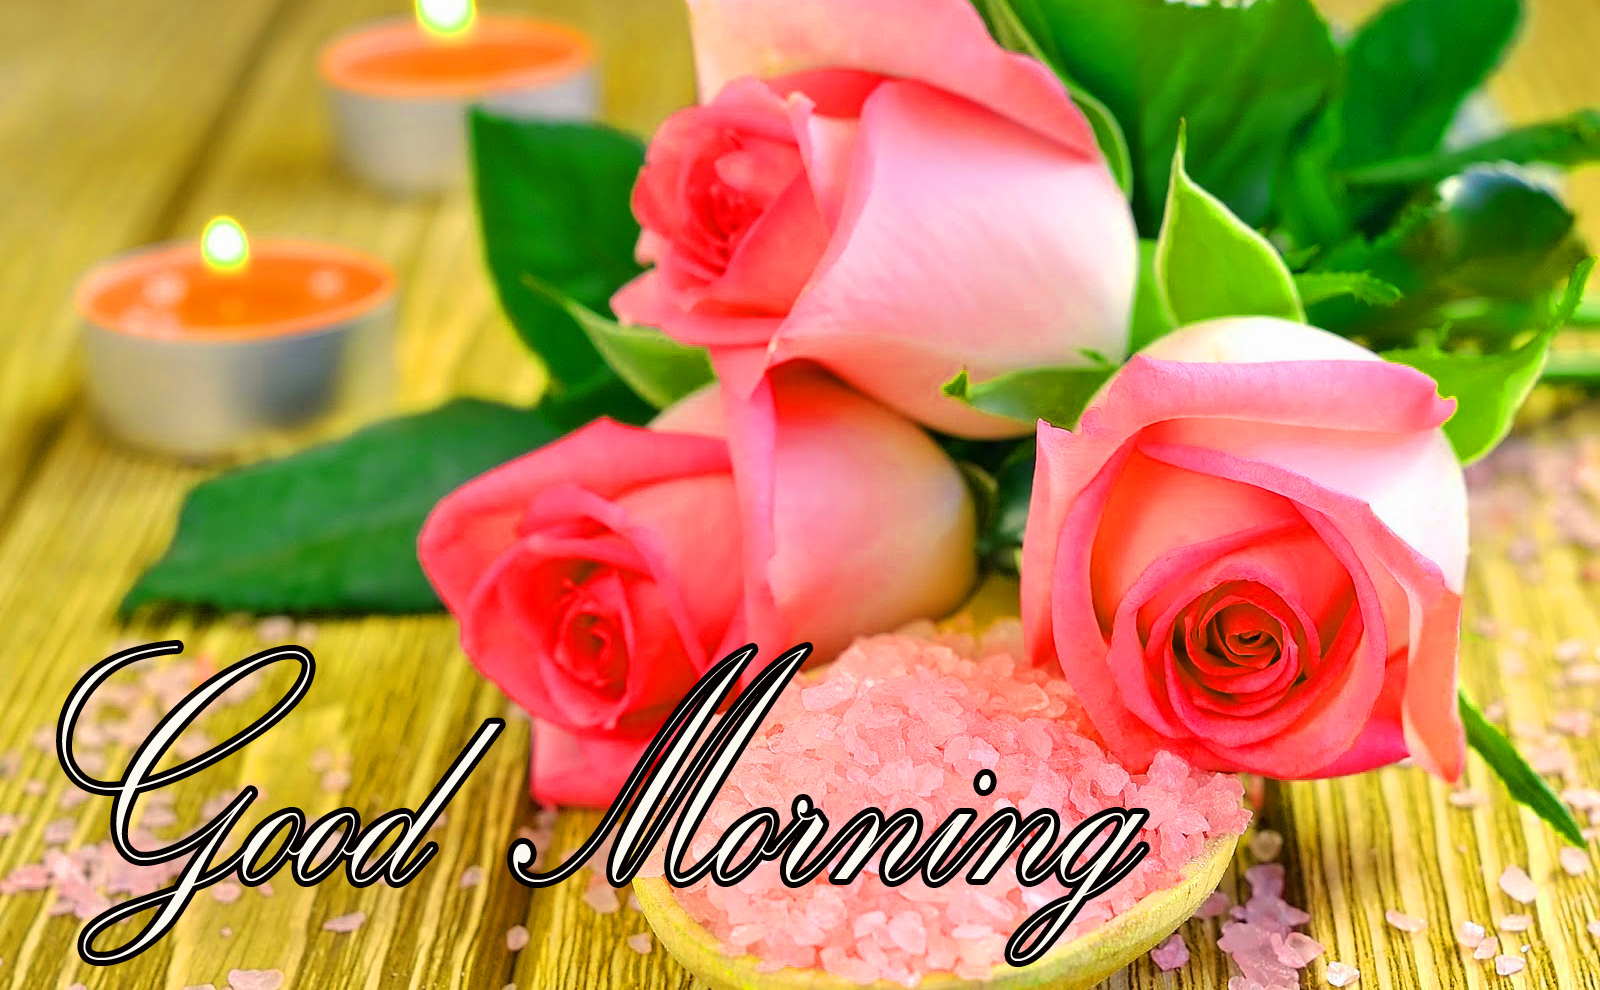 Good Morning Images Wallpaper Photo Pic Download With Red Rose HD